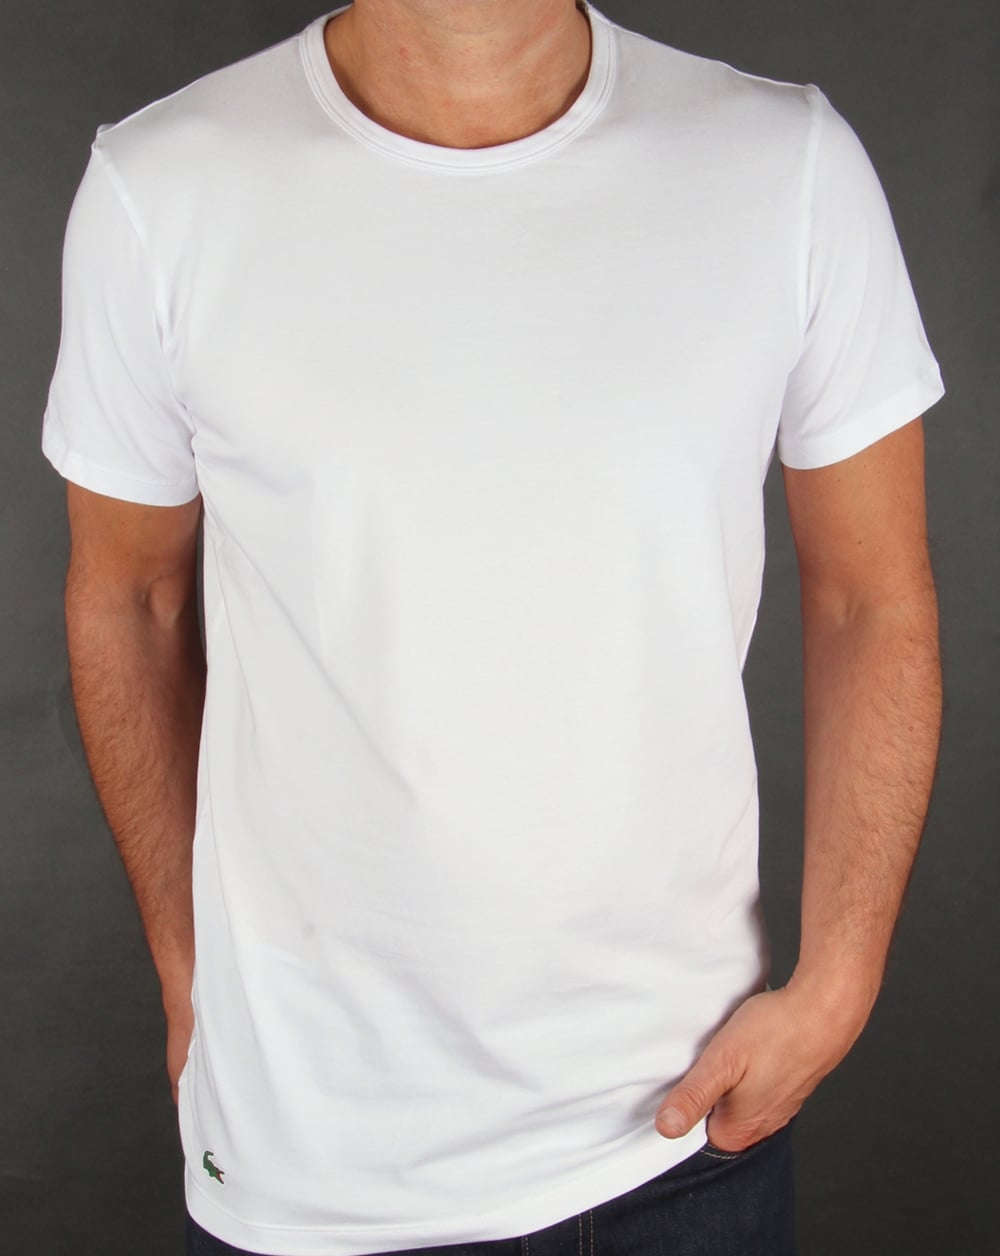 Shop Jockey men's crew neck t-shirts in comfy cotton. Our crew necks are long-lasting, durable and feel soft after every wash! Check out our crew neck t shirt selection today.